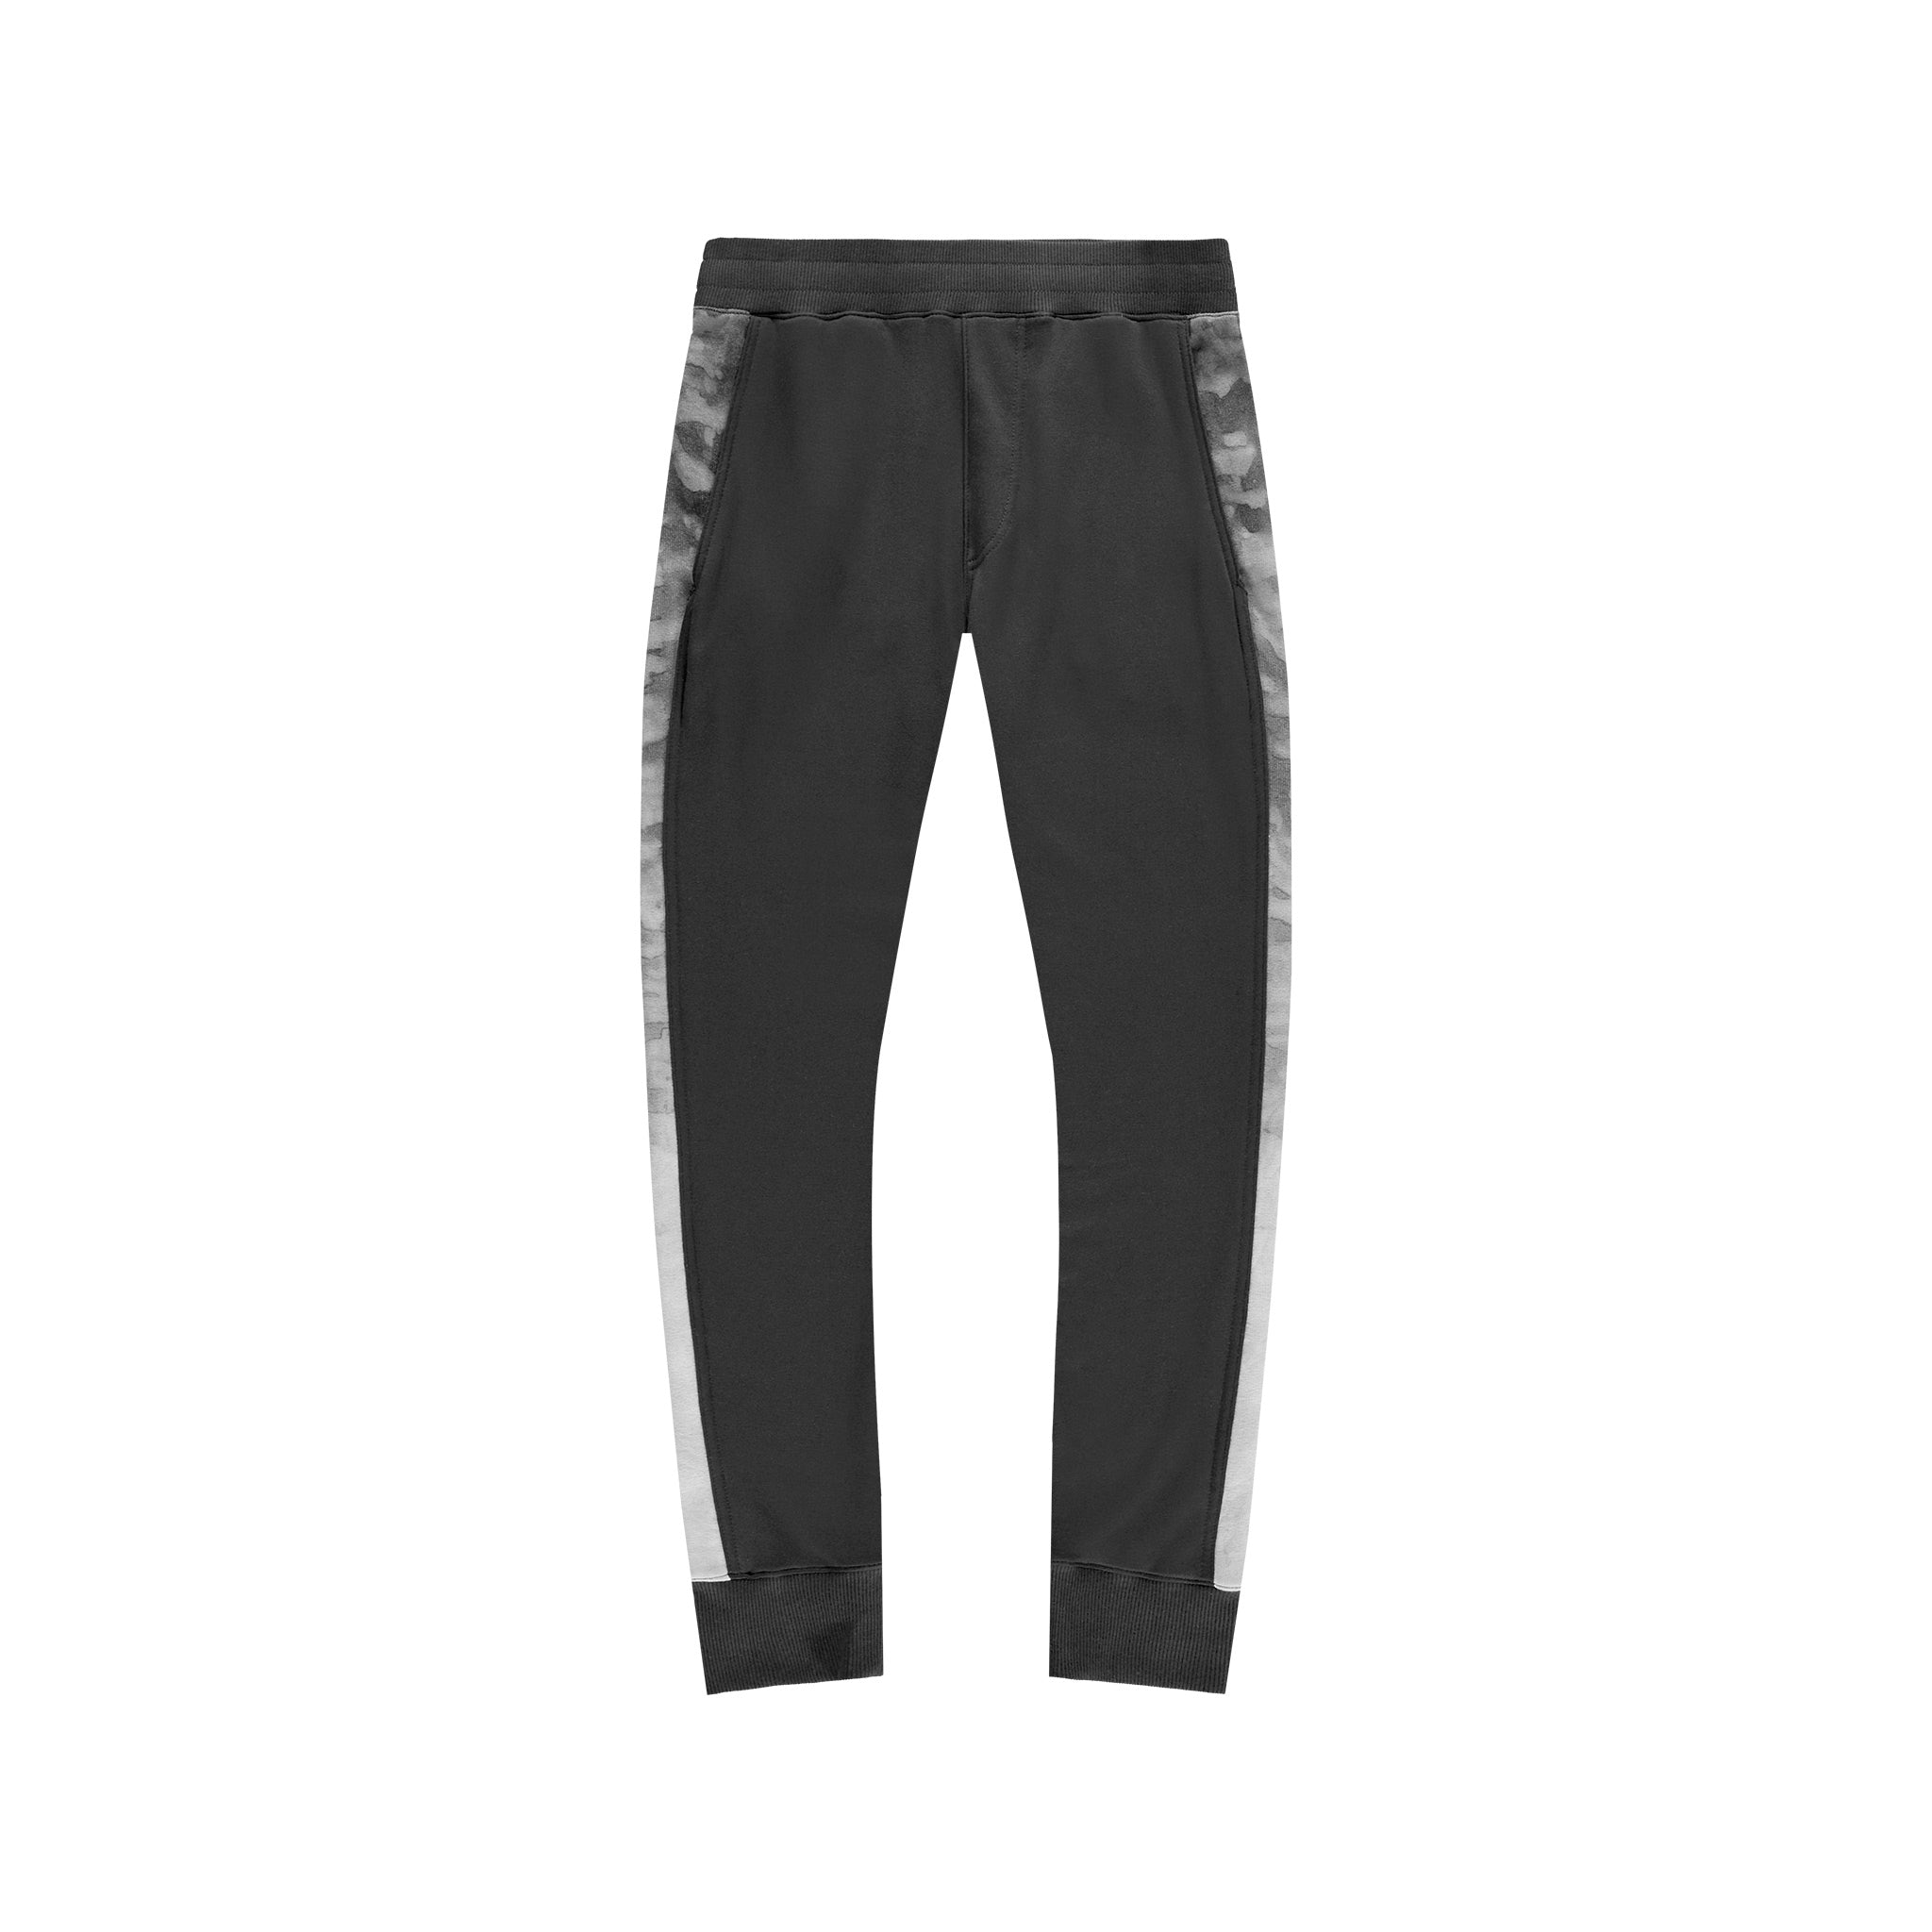 Panel Joggers in Black Marble - Mitchell Evan